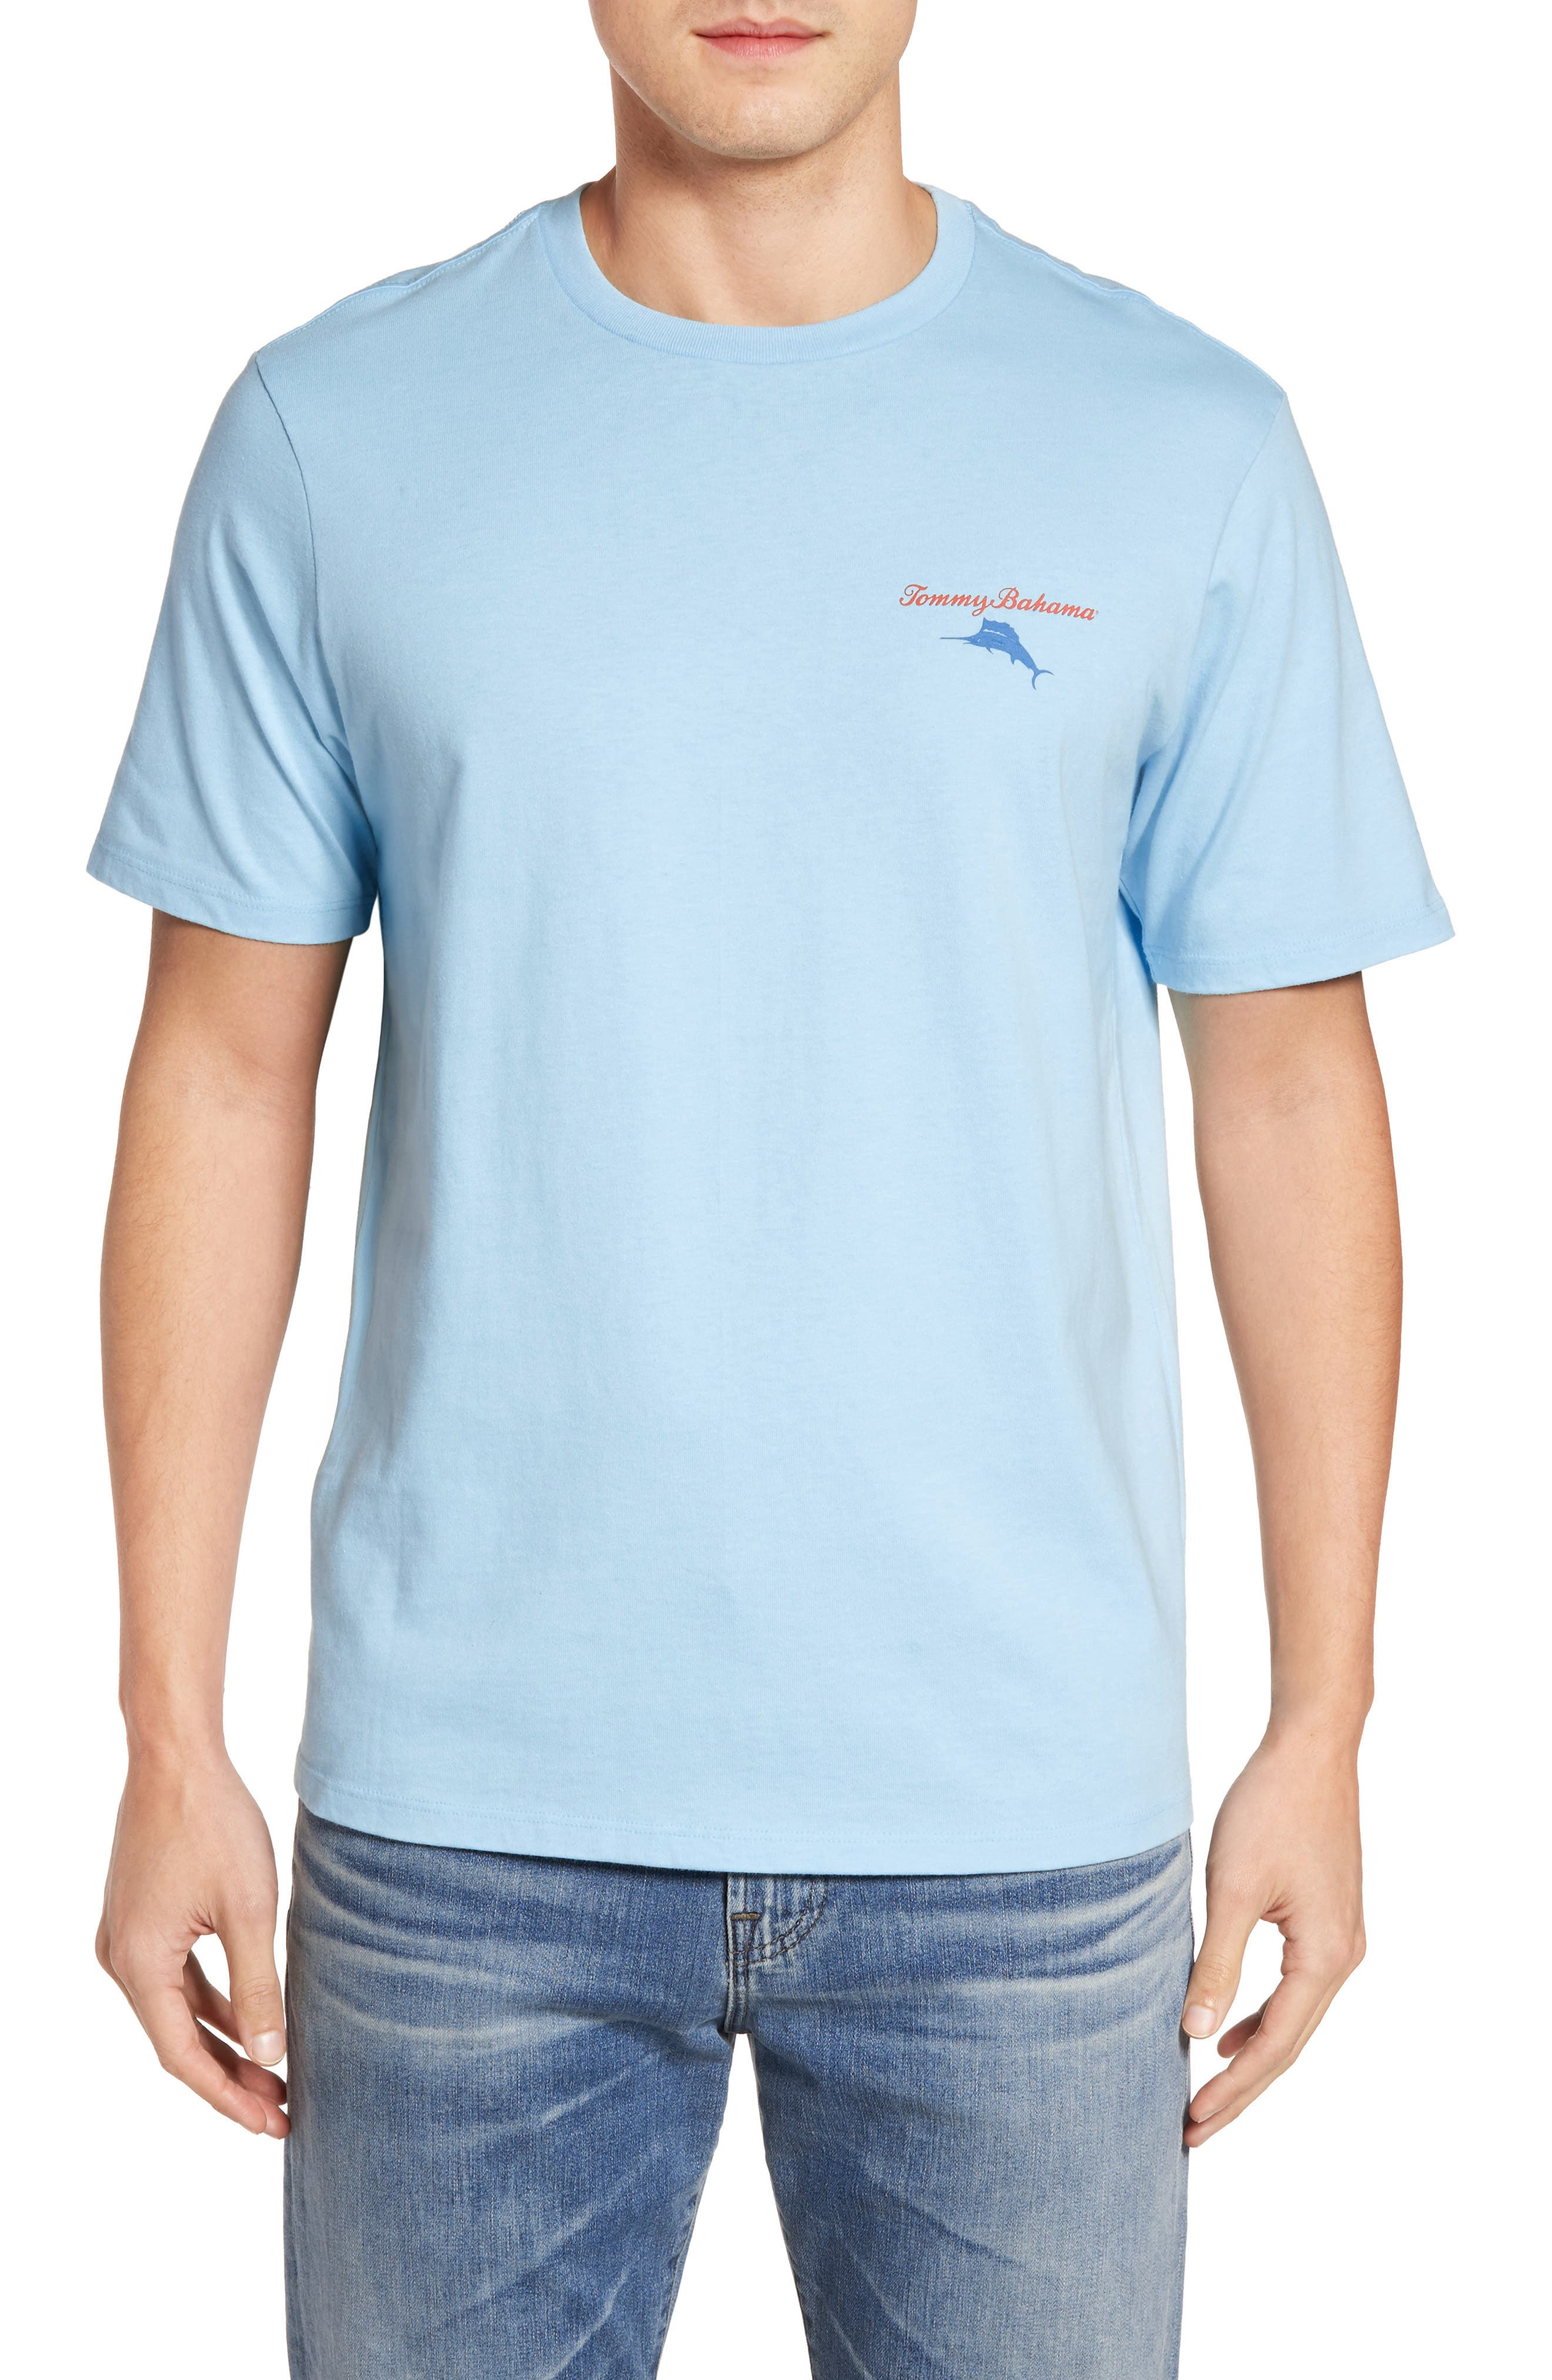 Mr. Ice Guy T-Shirt,                         Main,                         color,